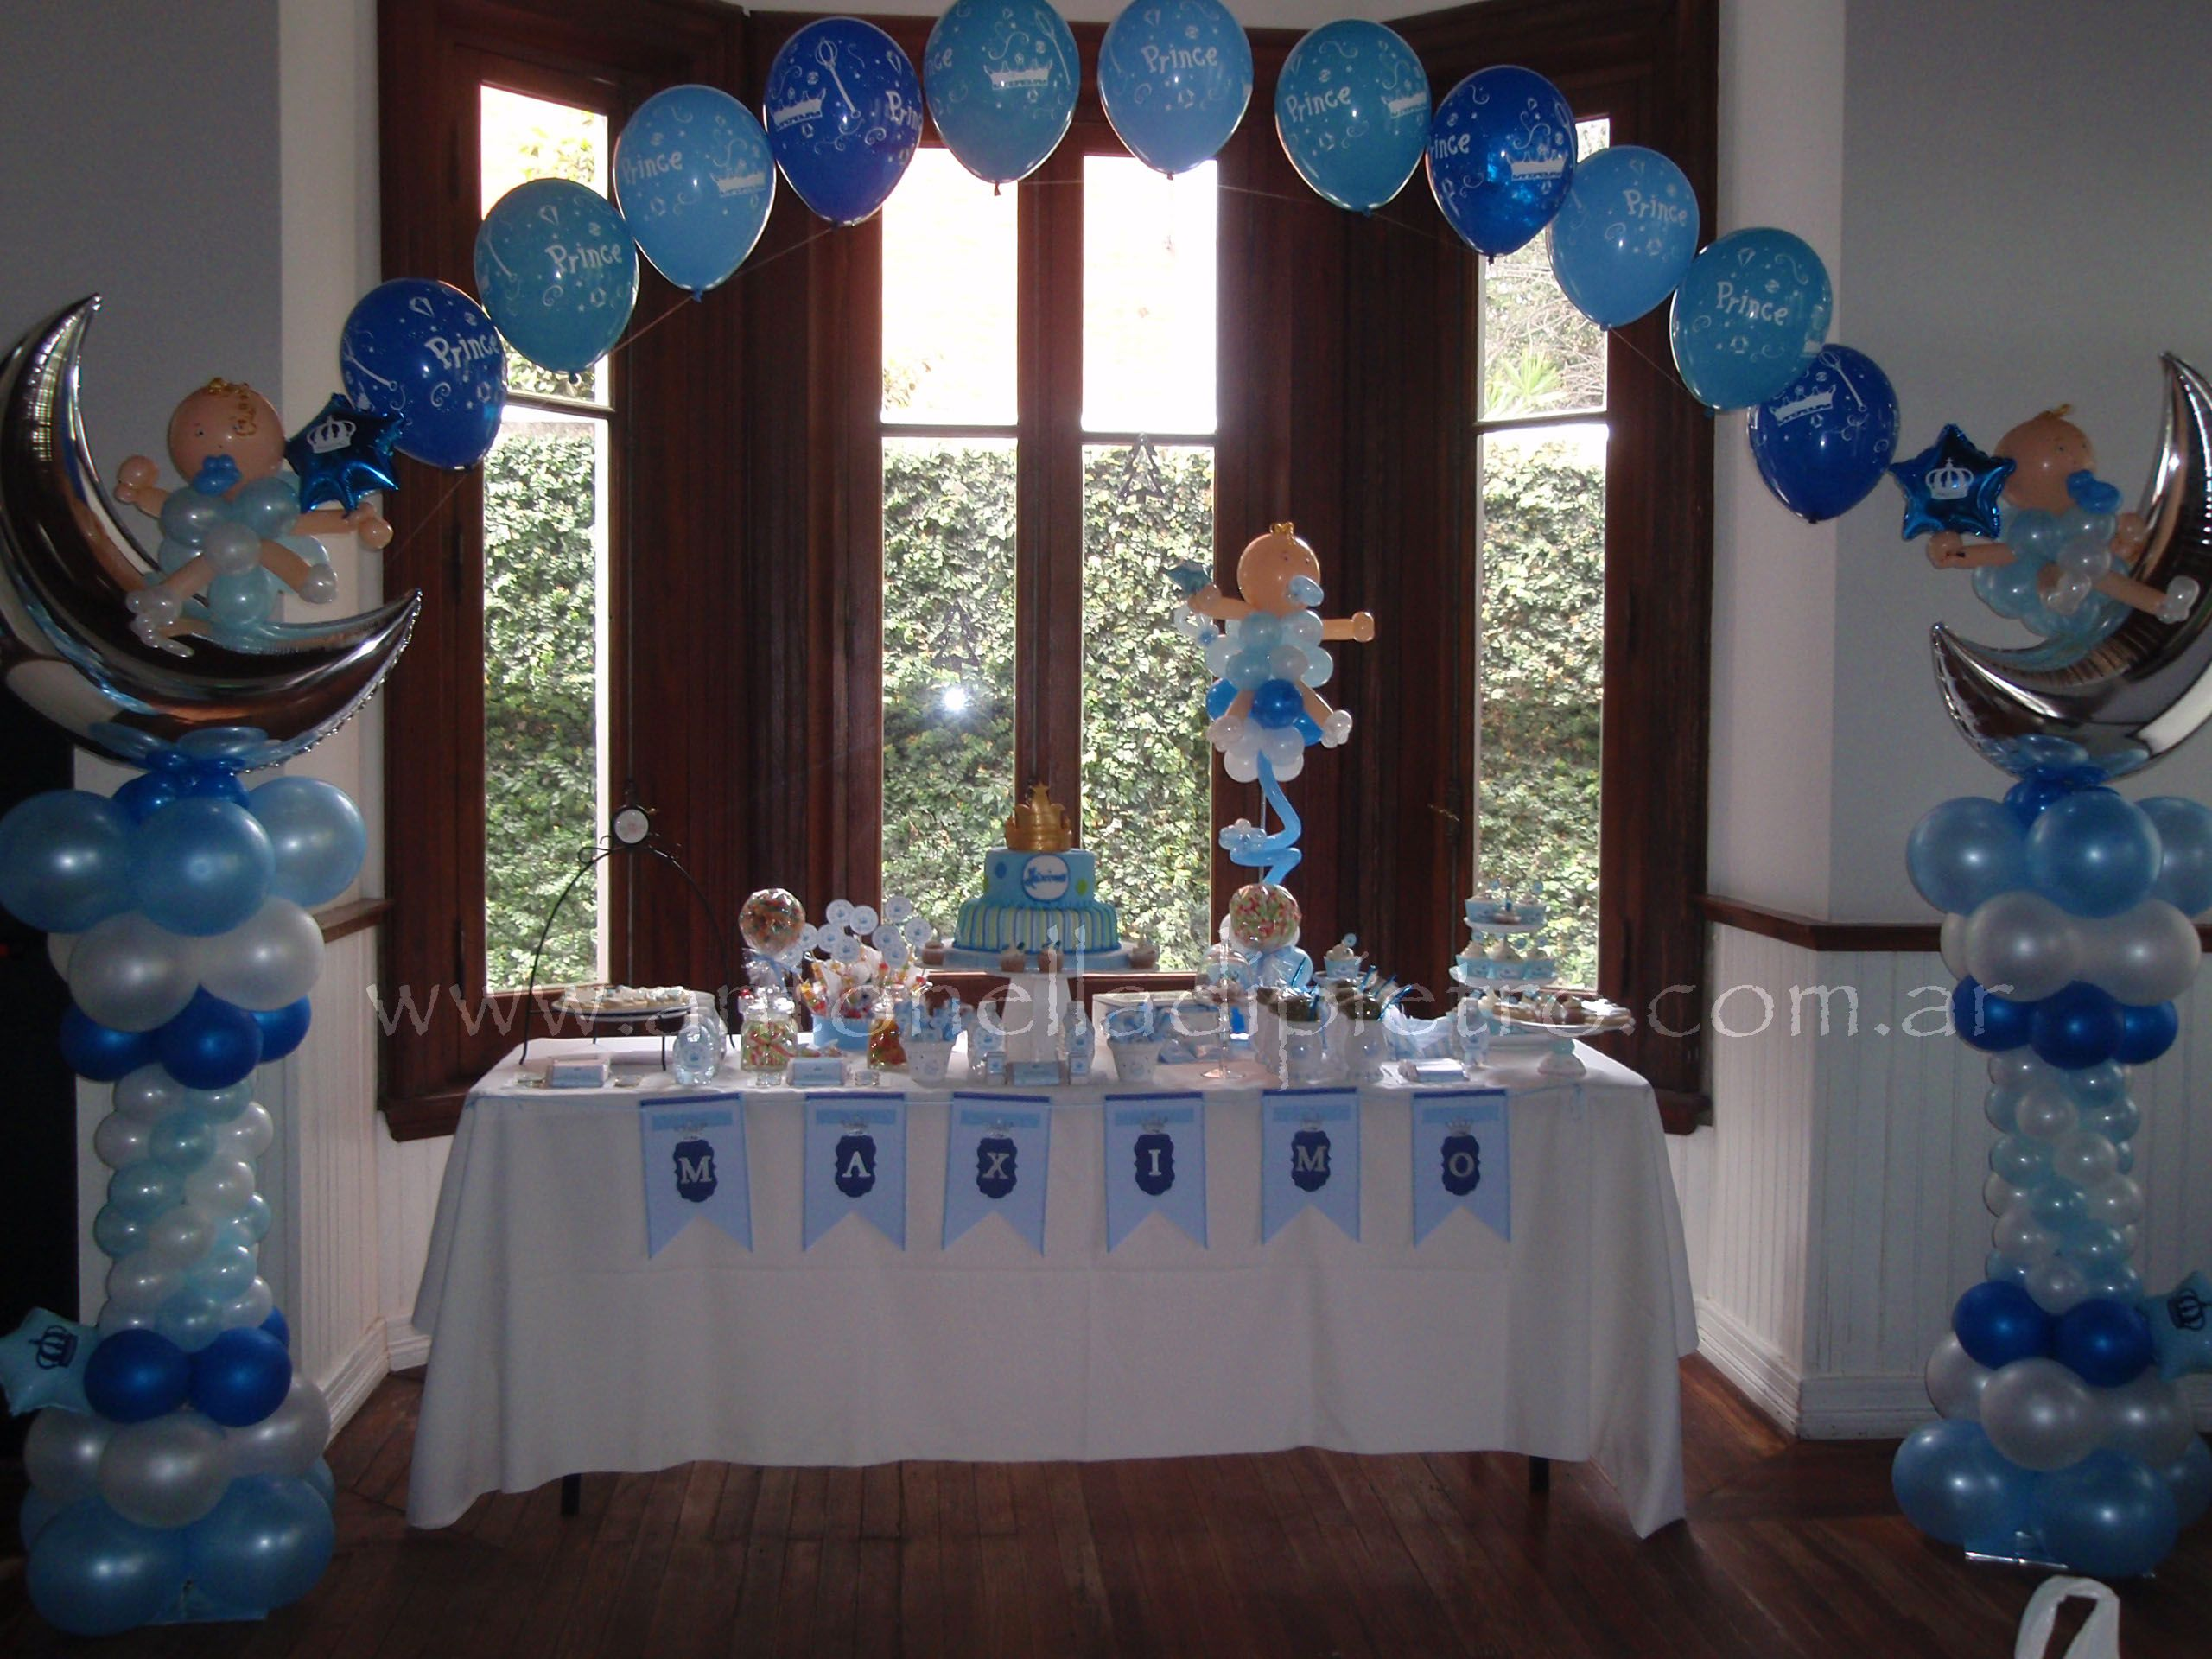 Bautismo fiesta imagui for Balloon decoration ideas for christening